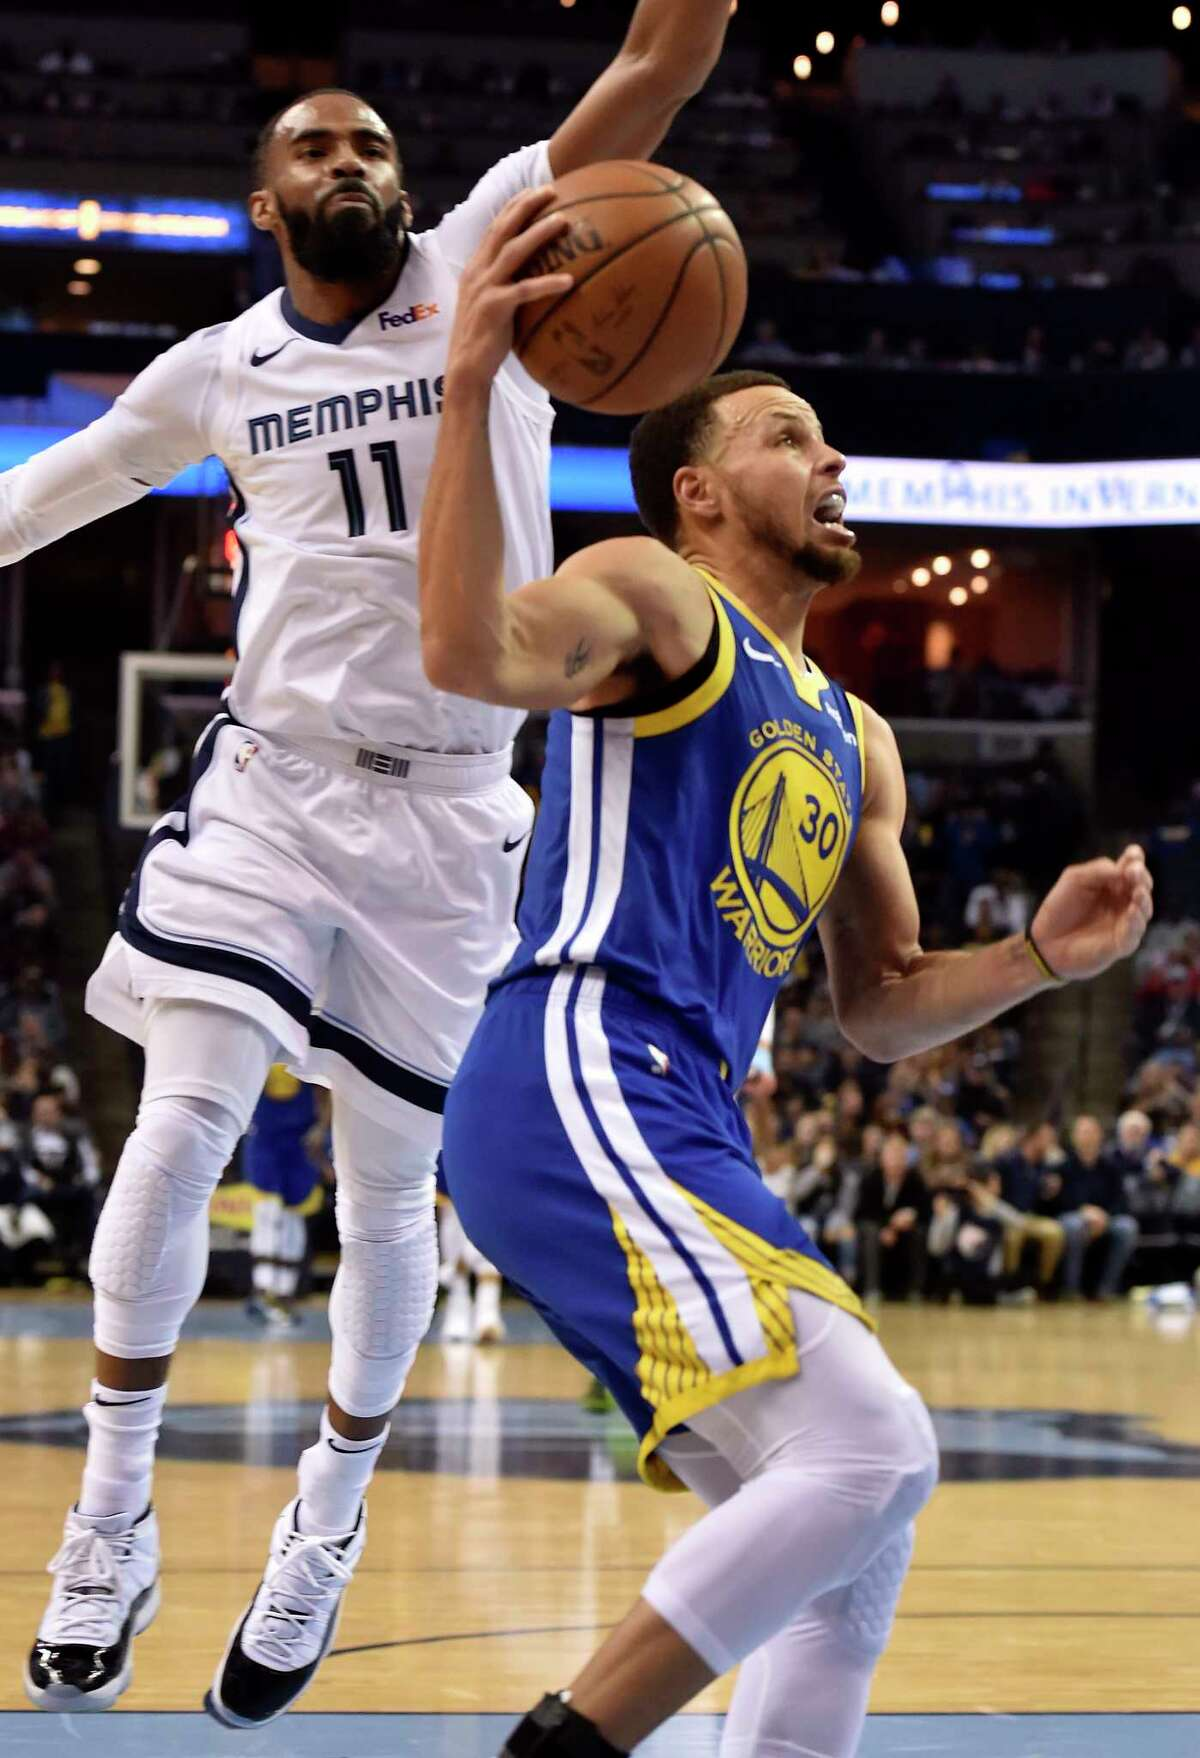 Golden State Warriors guard Stephen Curry (30) drives to the basket ahead of Memphis Grizzlies guard Mike Conley (11) in the second half of an NBA basketball game Wednesday, March 27, 2019, in Memphis, Tenn. (AP Photo/Brandon Dill)